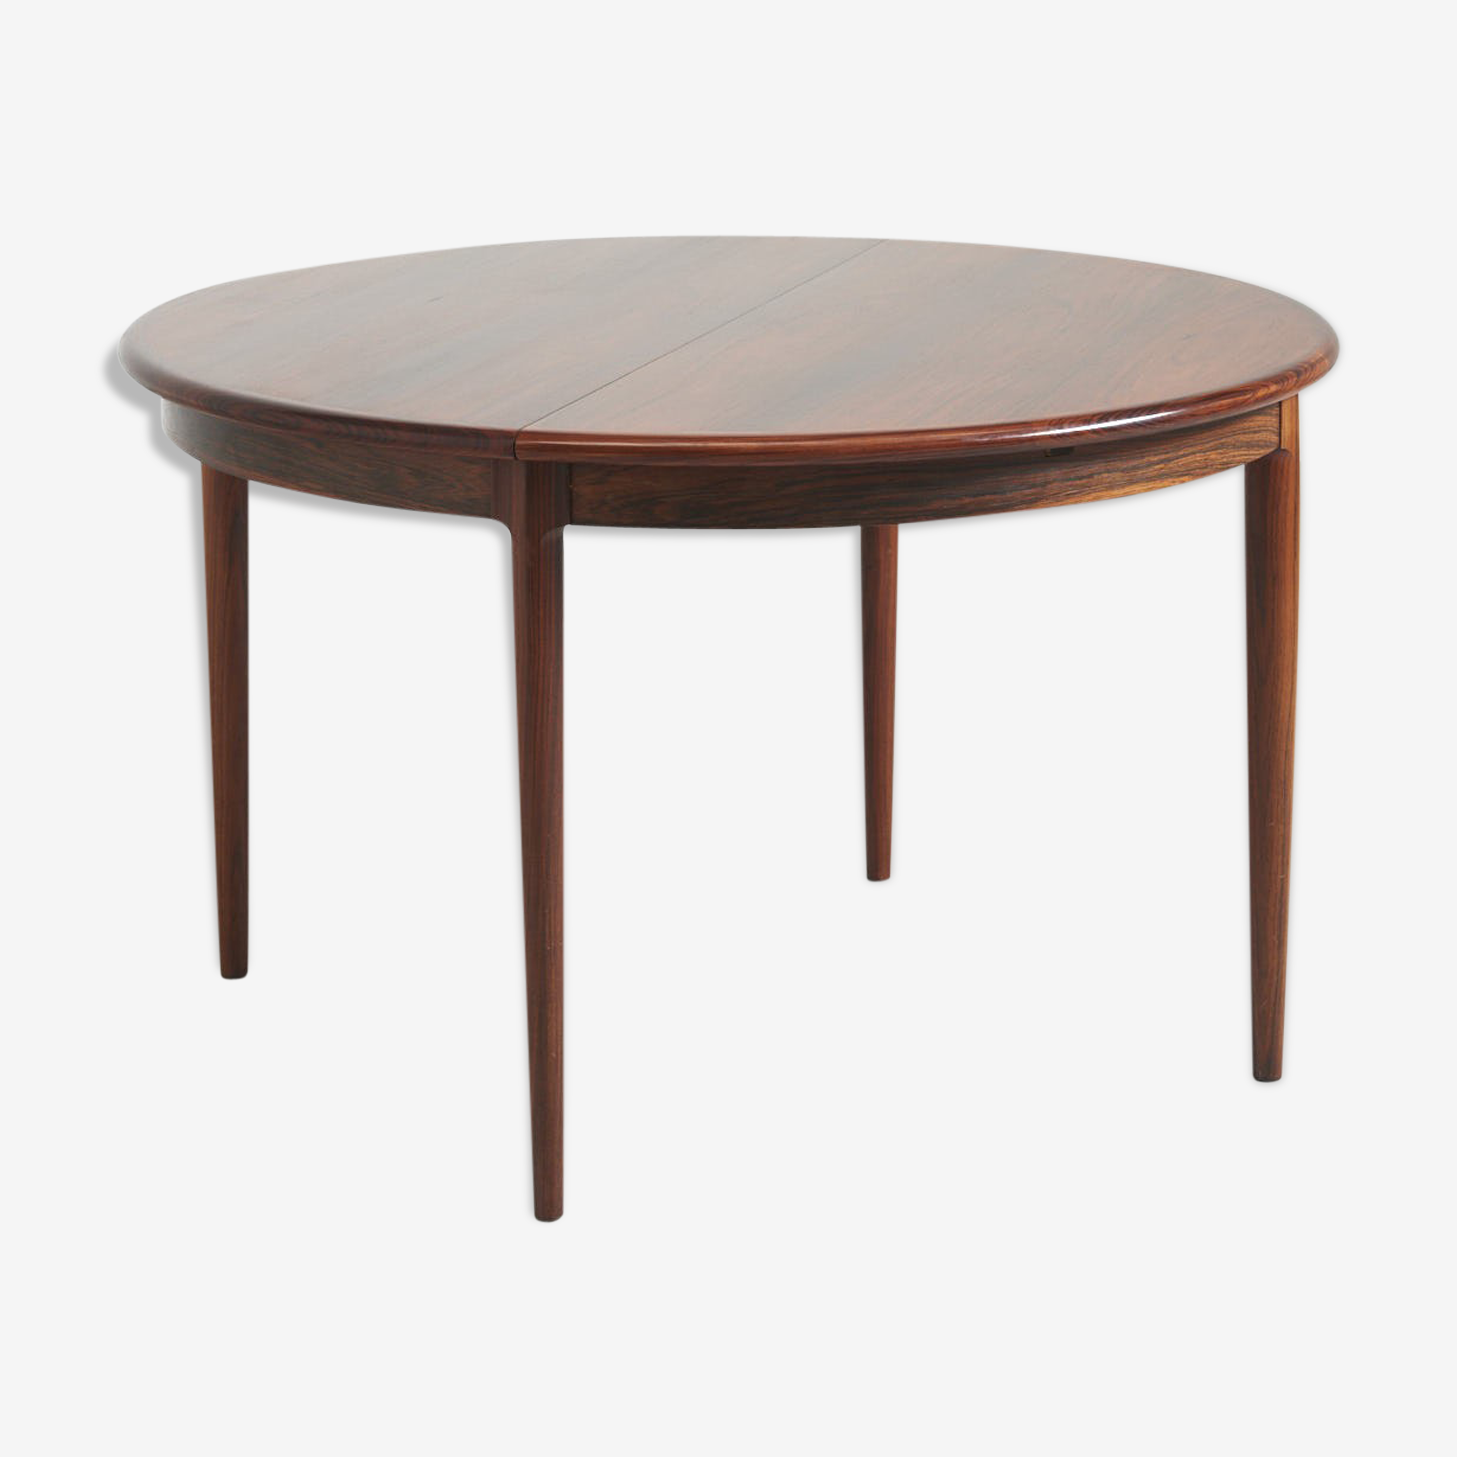 Round Rosewood Dining Table by Niels Möller 1960s